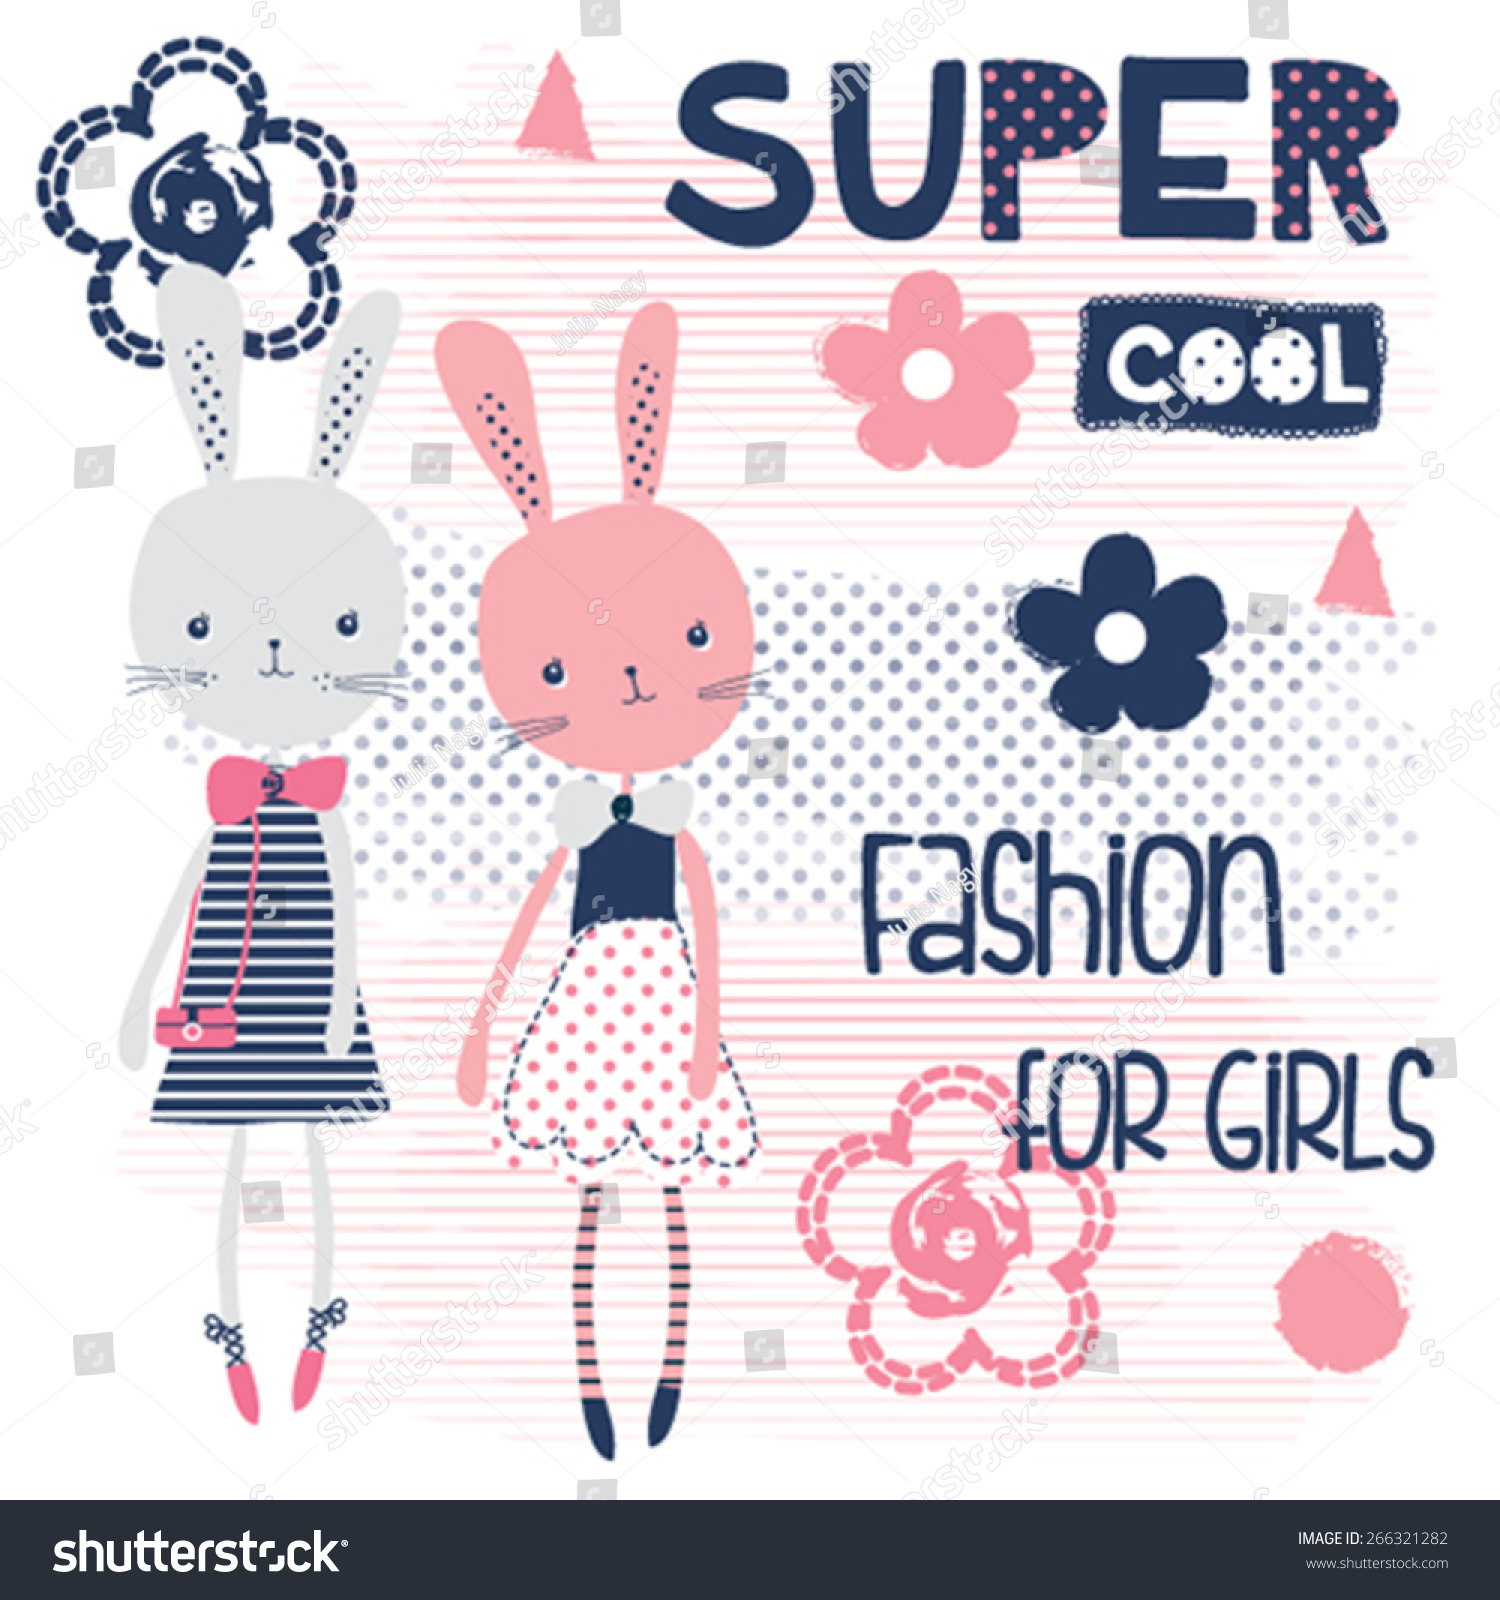 Design t shirt girl - Cute Bunny Girls Fashion For Girls T Shirt Design Vector Illustration